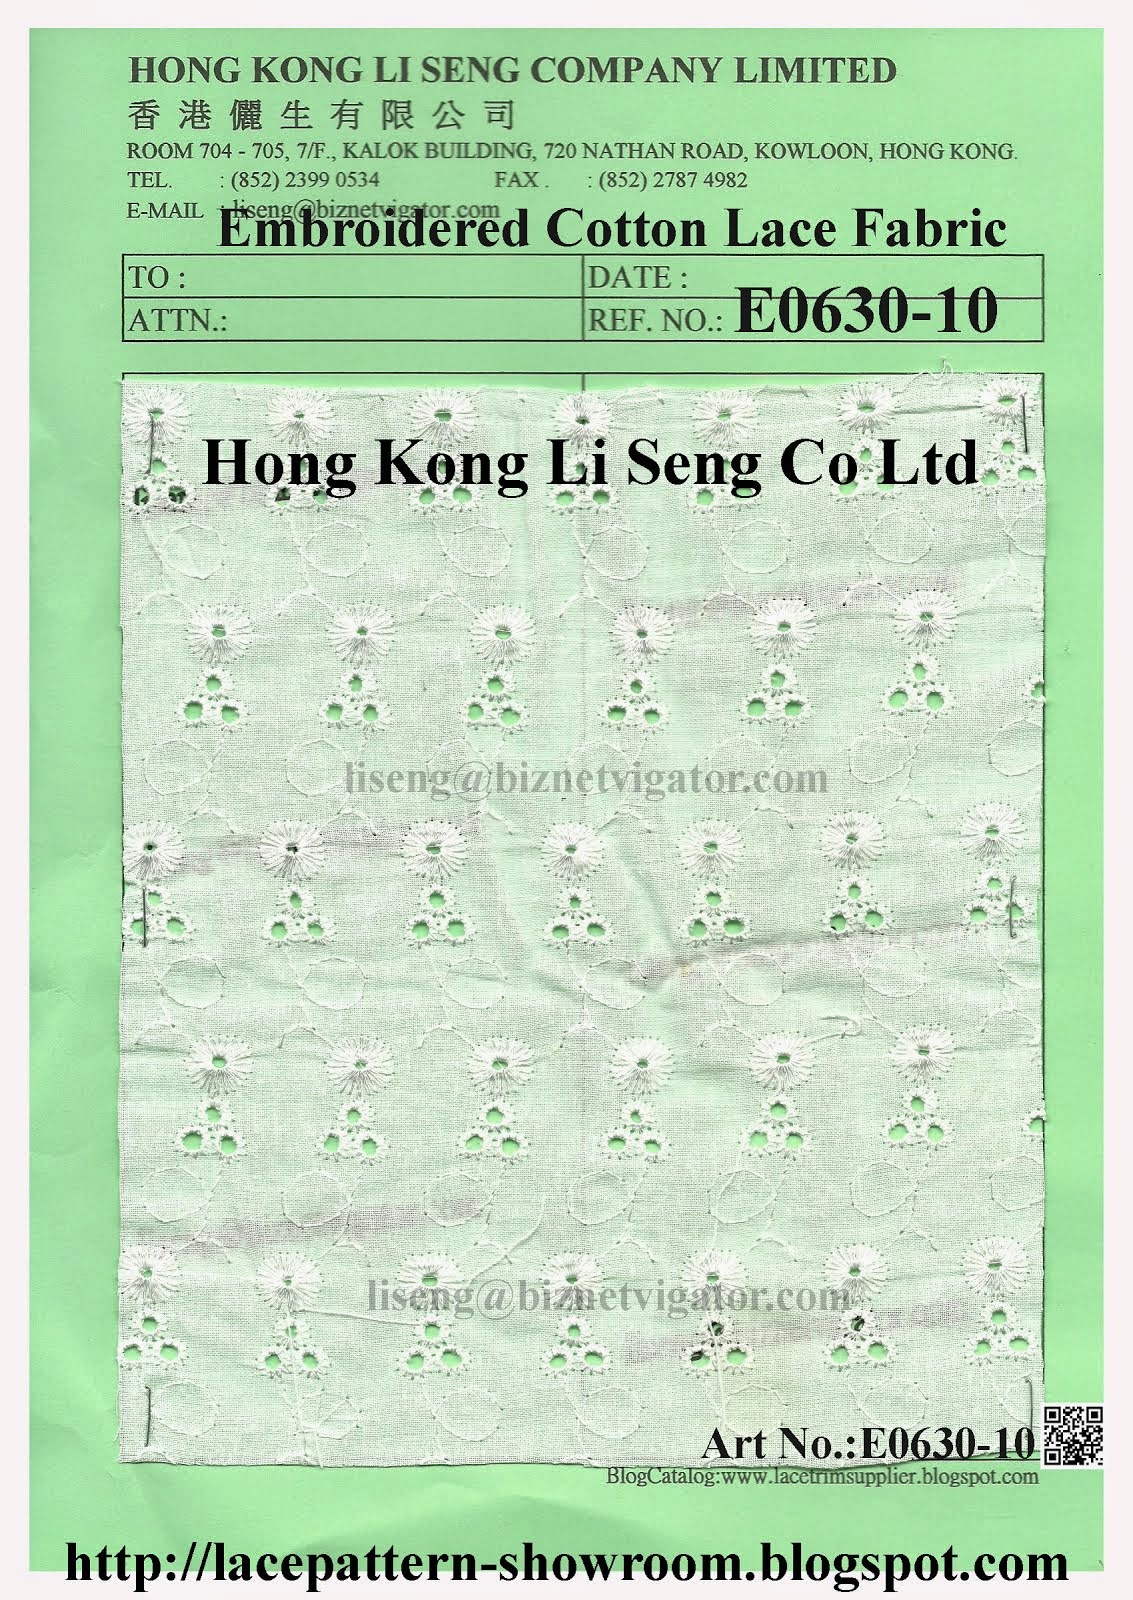 Embroidered Cotton Lace Fabric Manufacturer Wholesaler and Supplier - Hong Kong Li Seng Co Ltd